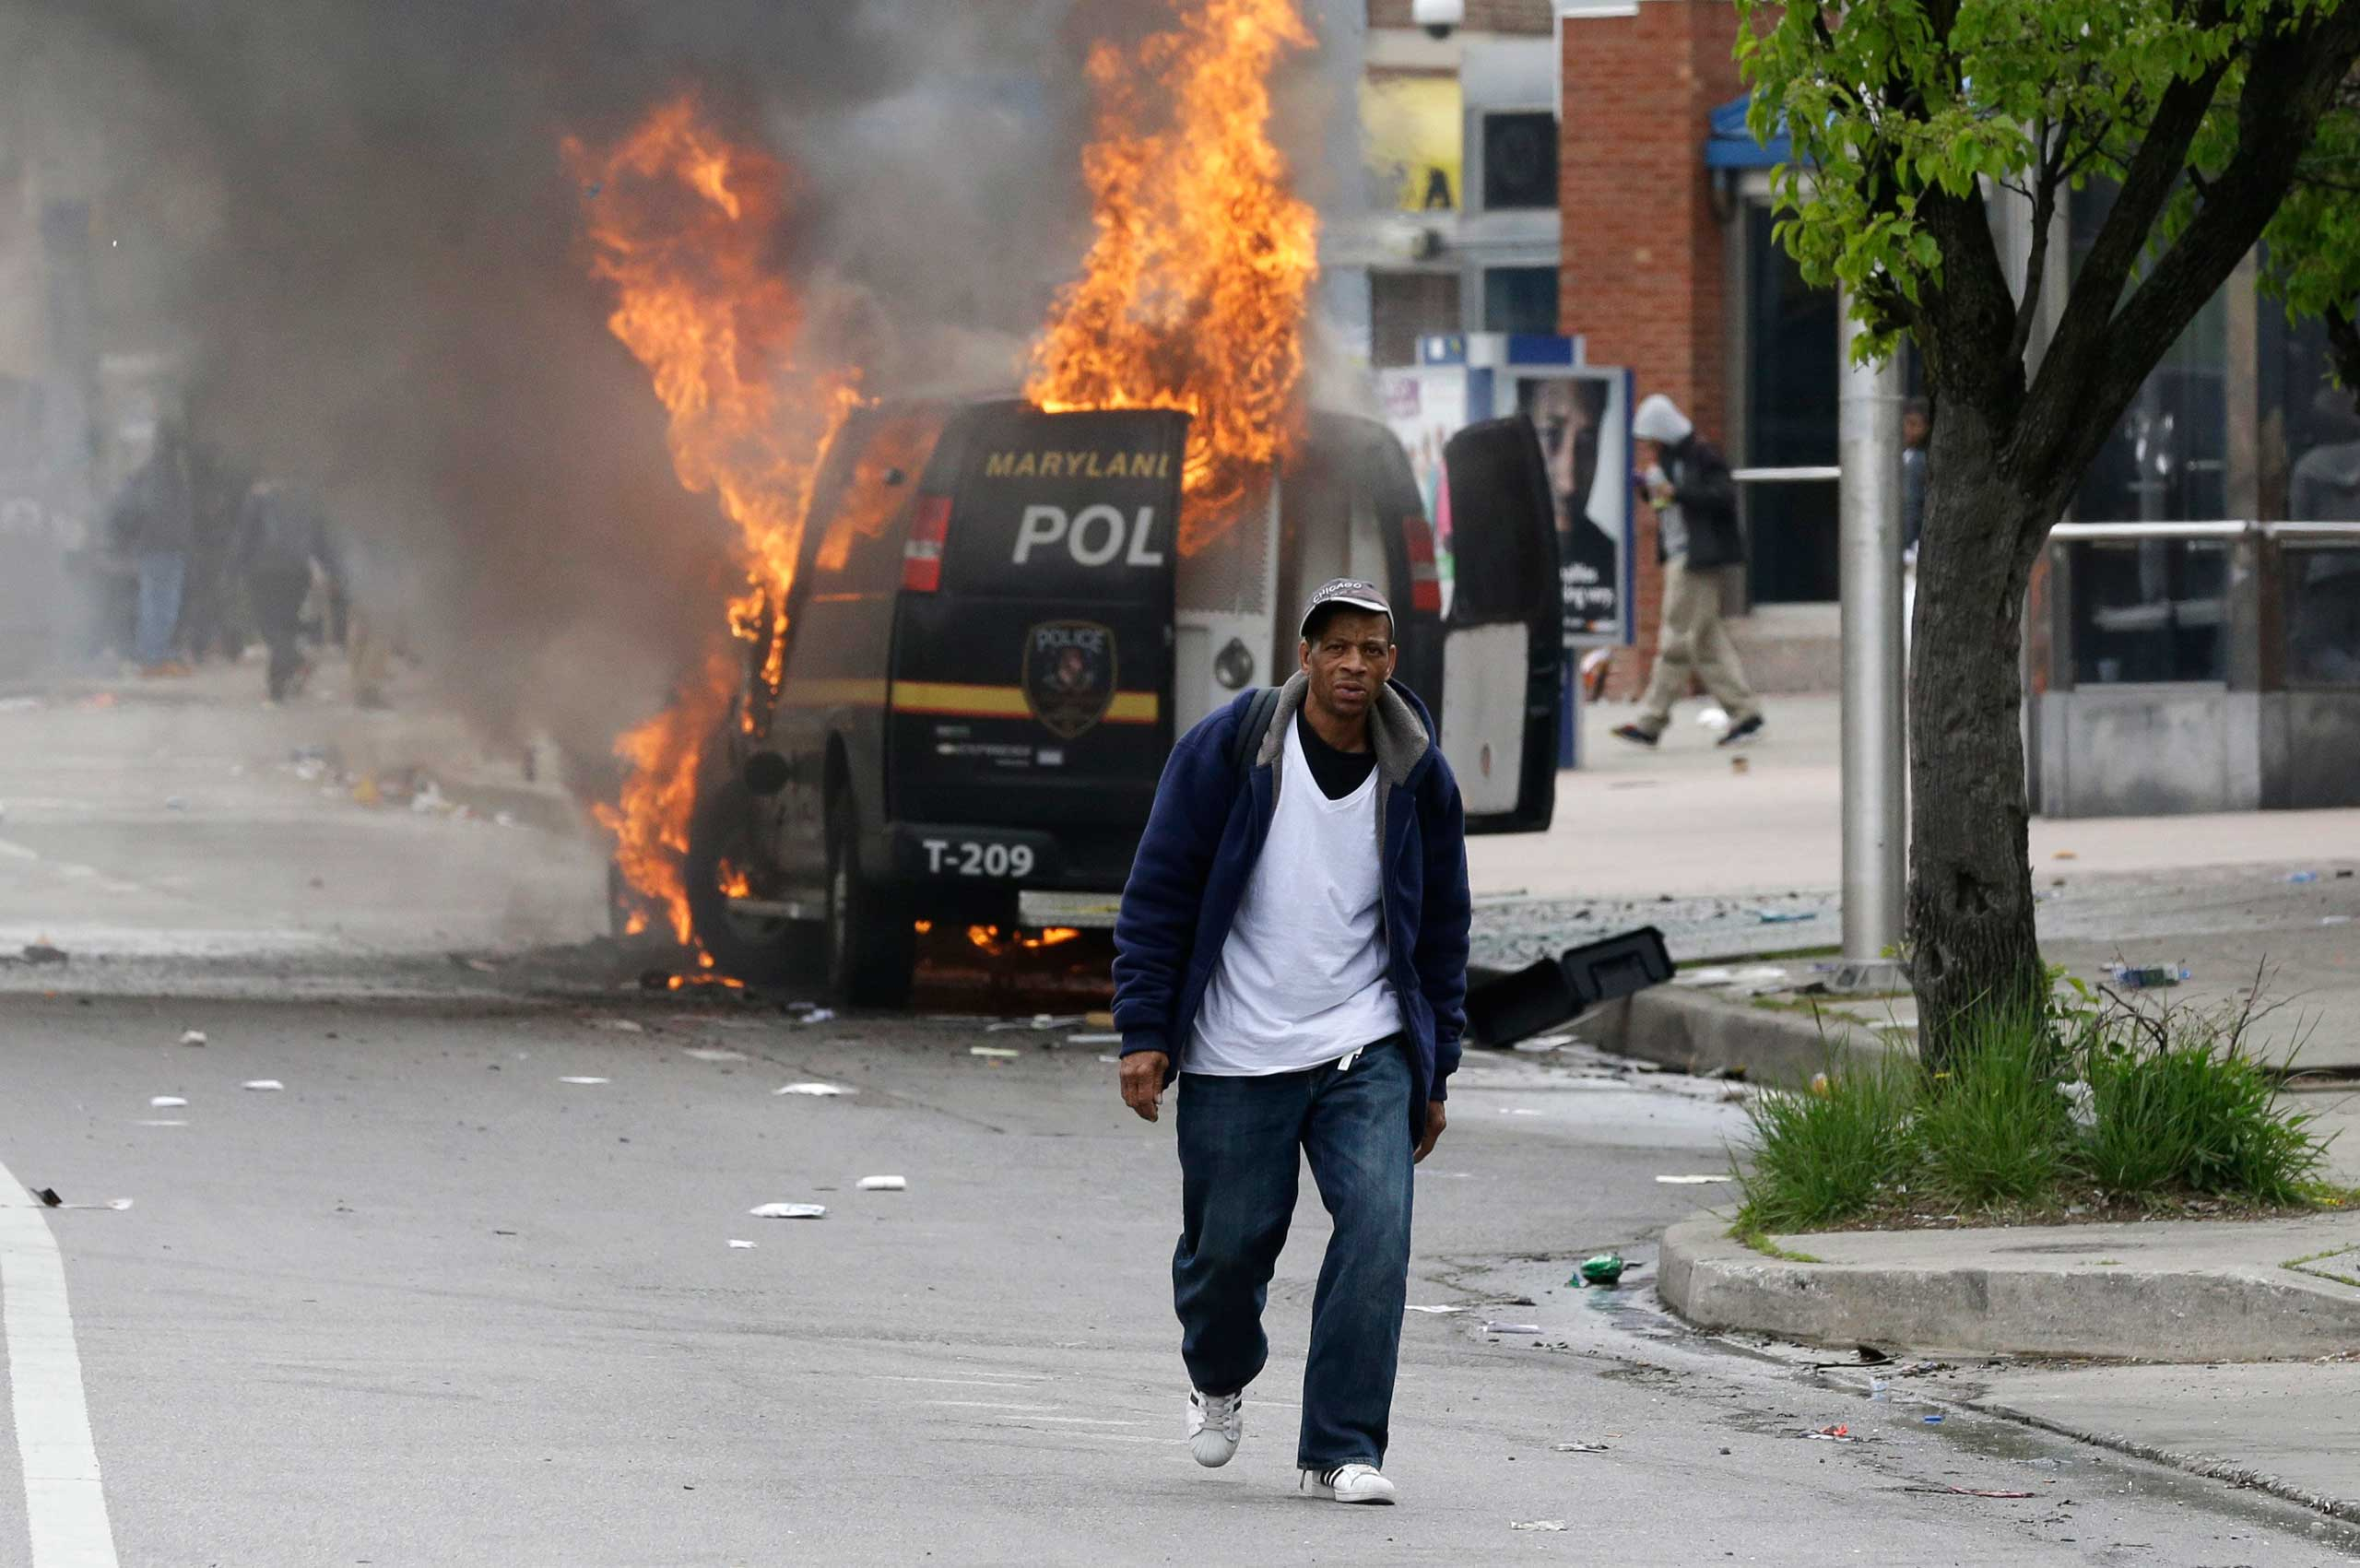 A man walks past a burning police vehicle in Baltimore on April 27, 2015.